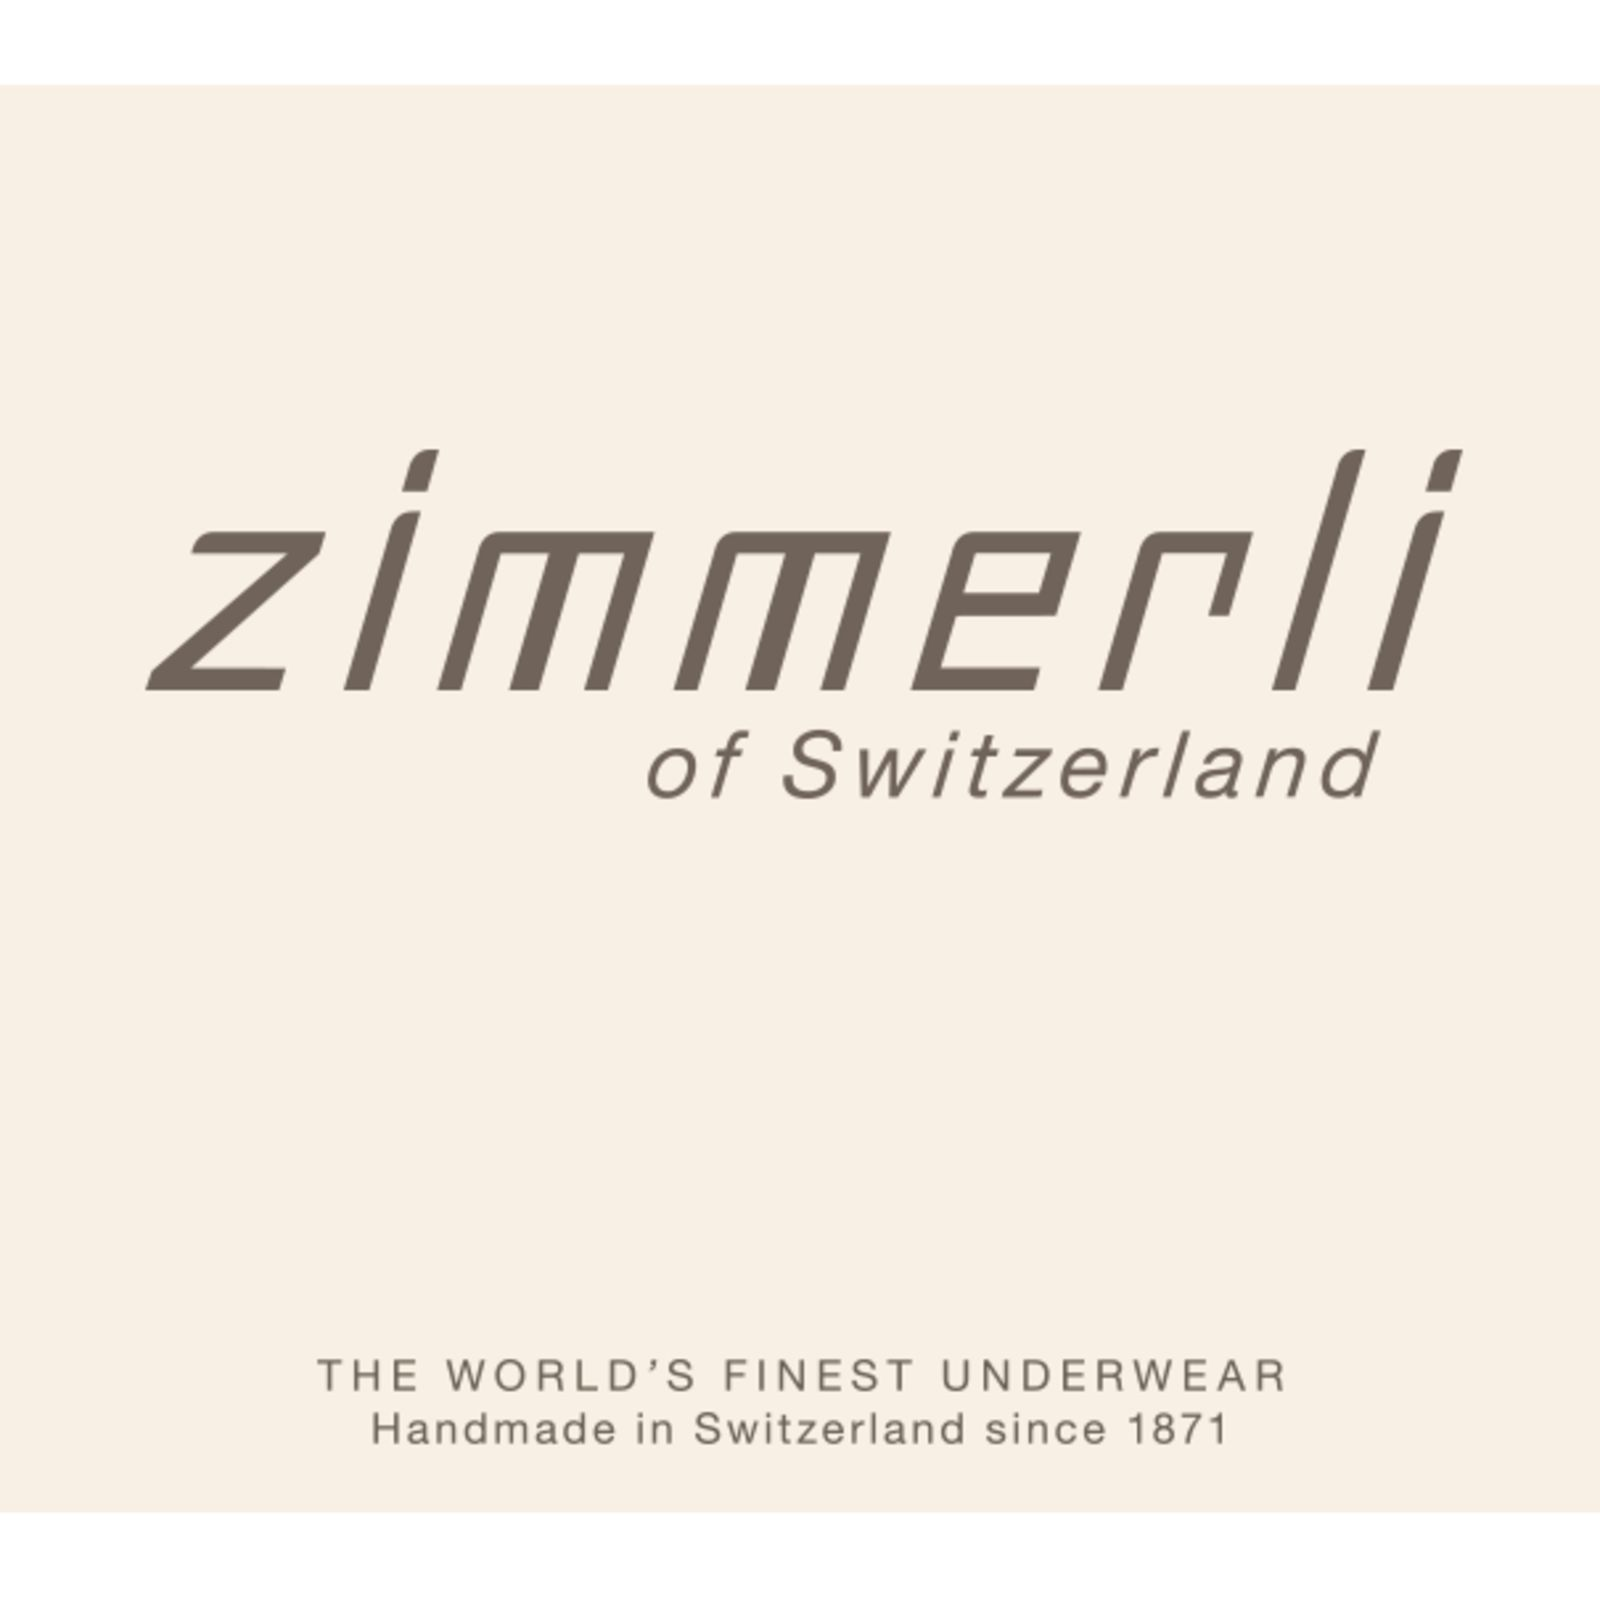 Zimmerli of Switzerland (Bild 1)